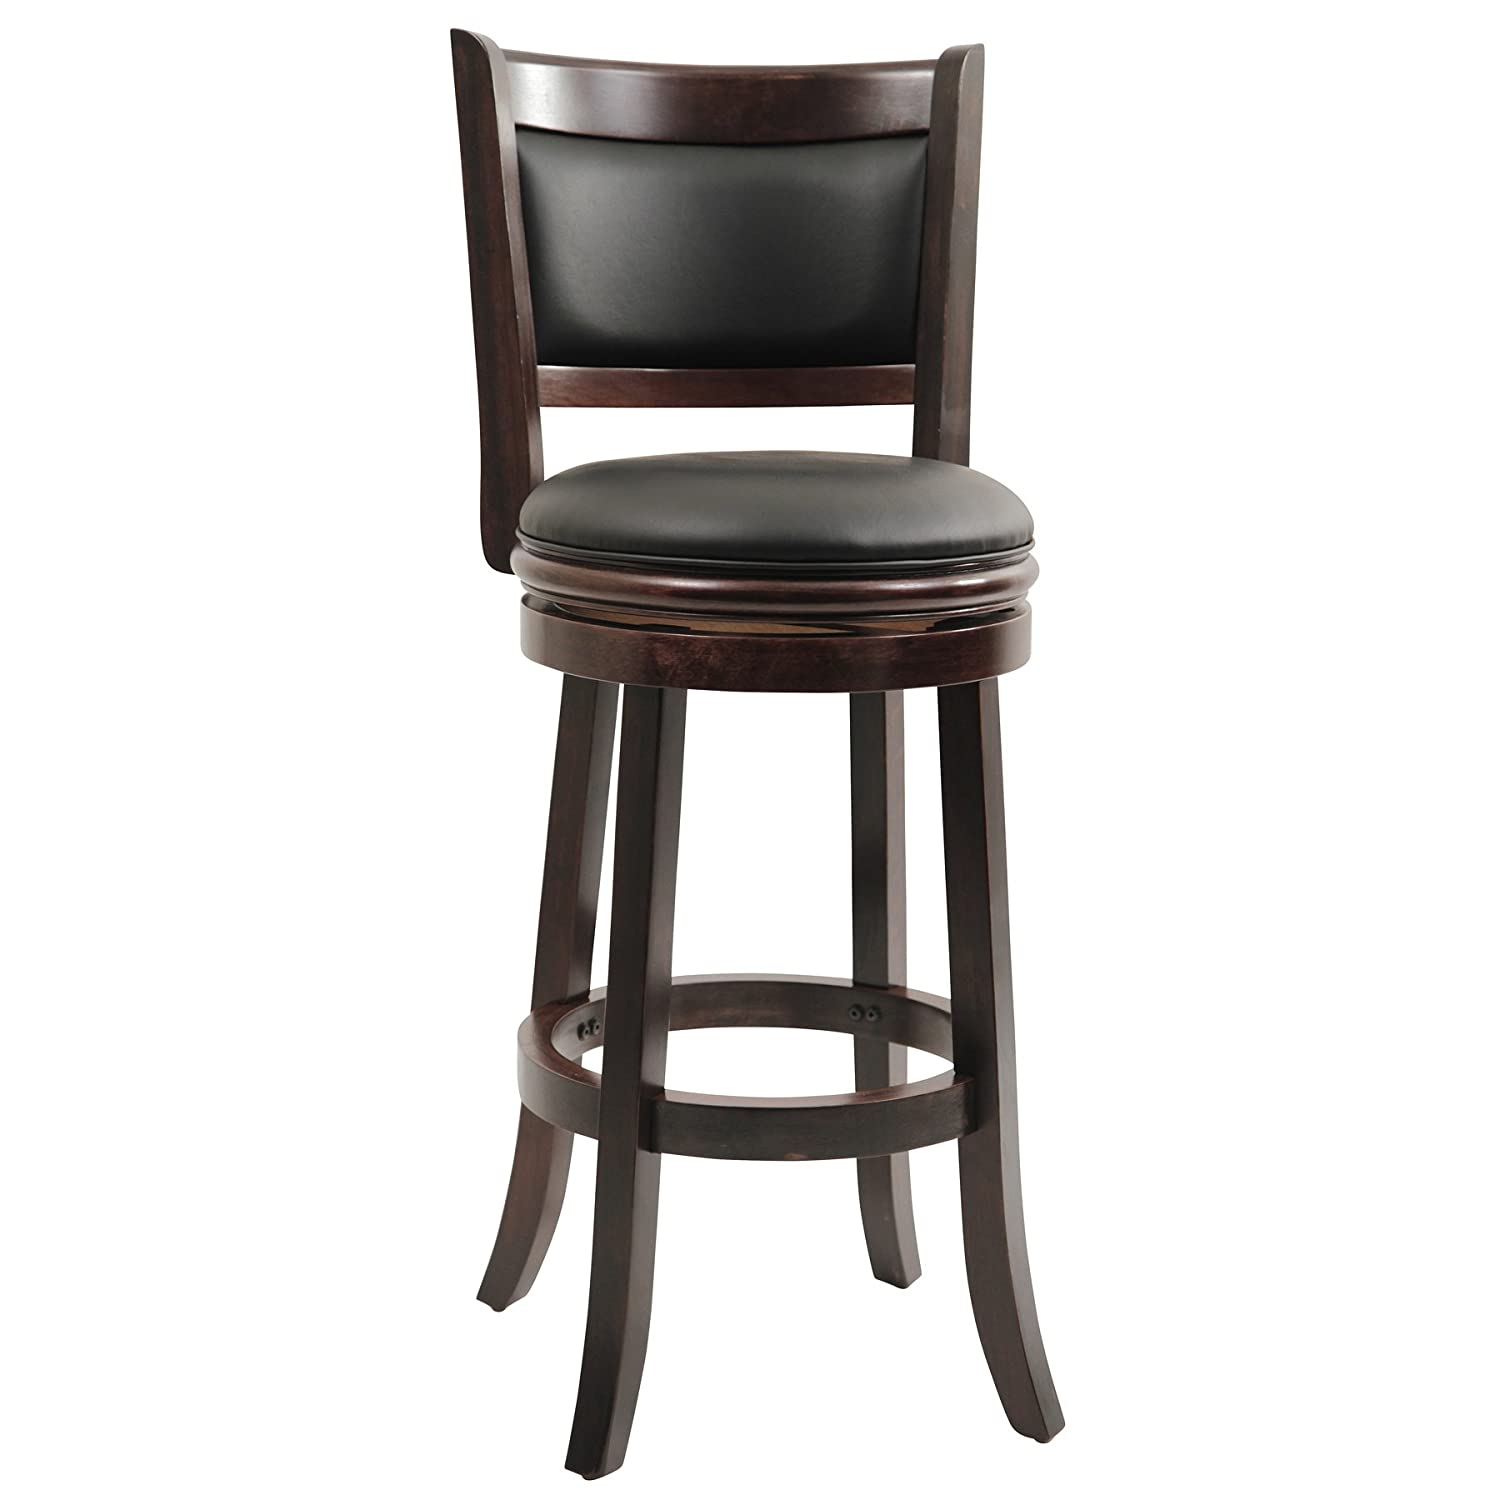 Bar Stools - Perfect For Entertainment and Relaxation